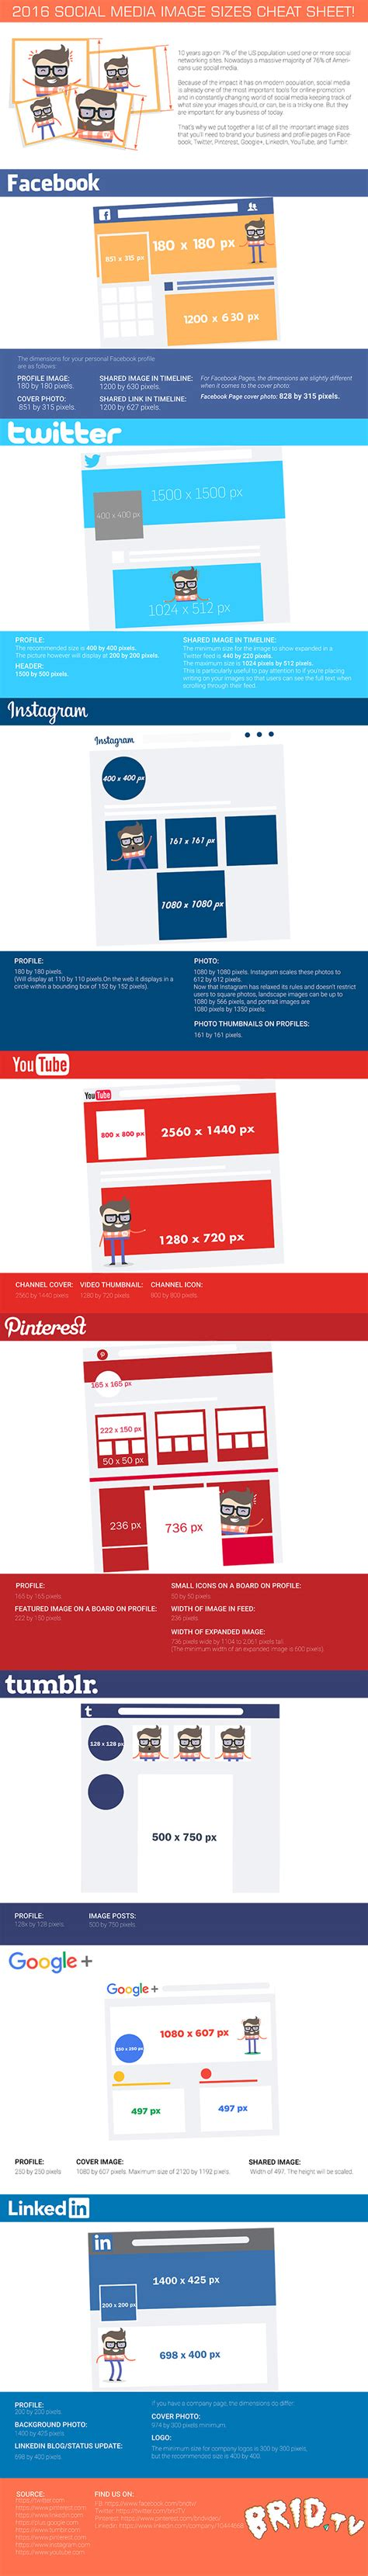 2016 social media marketing infographic 2016 social media image sizes cheat sheet infographic